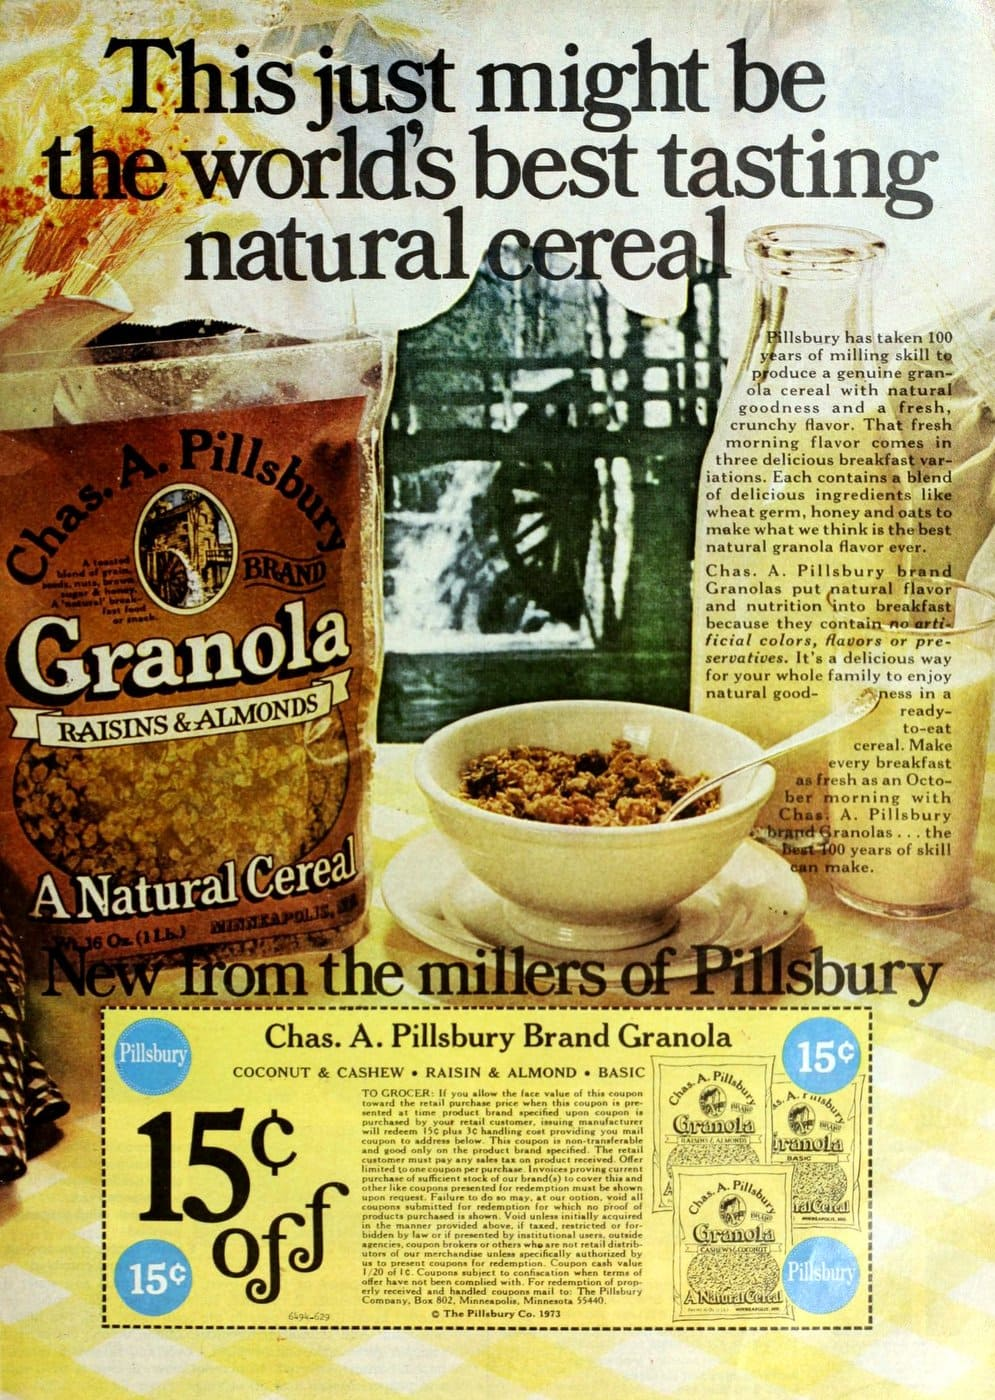 Chas A Pillsubry Granola cereal(1973)